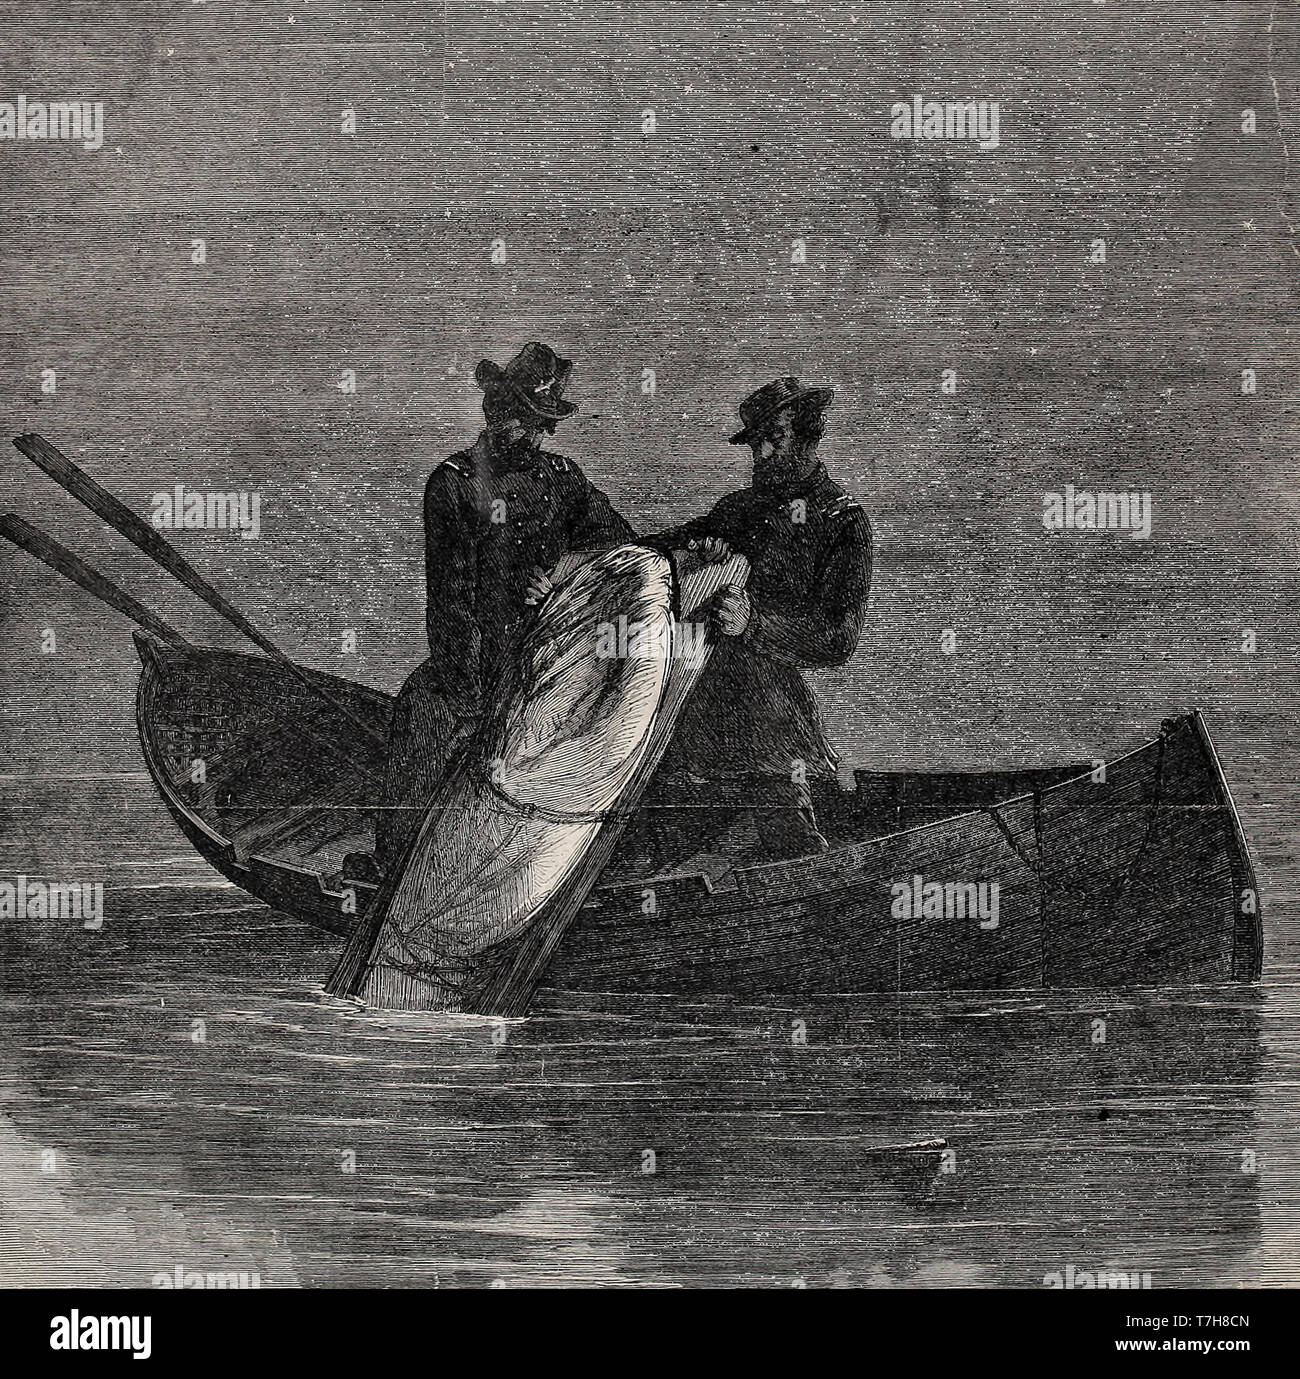 The final disposition of John Wilkes Booth body, dumped in the Potomac River - This was published in 1865, but it was not actually true - Stock Image